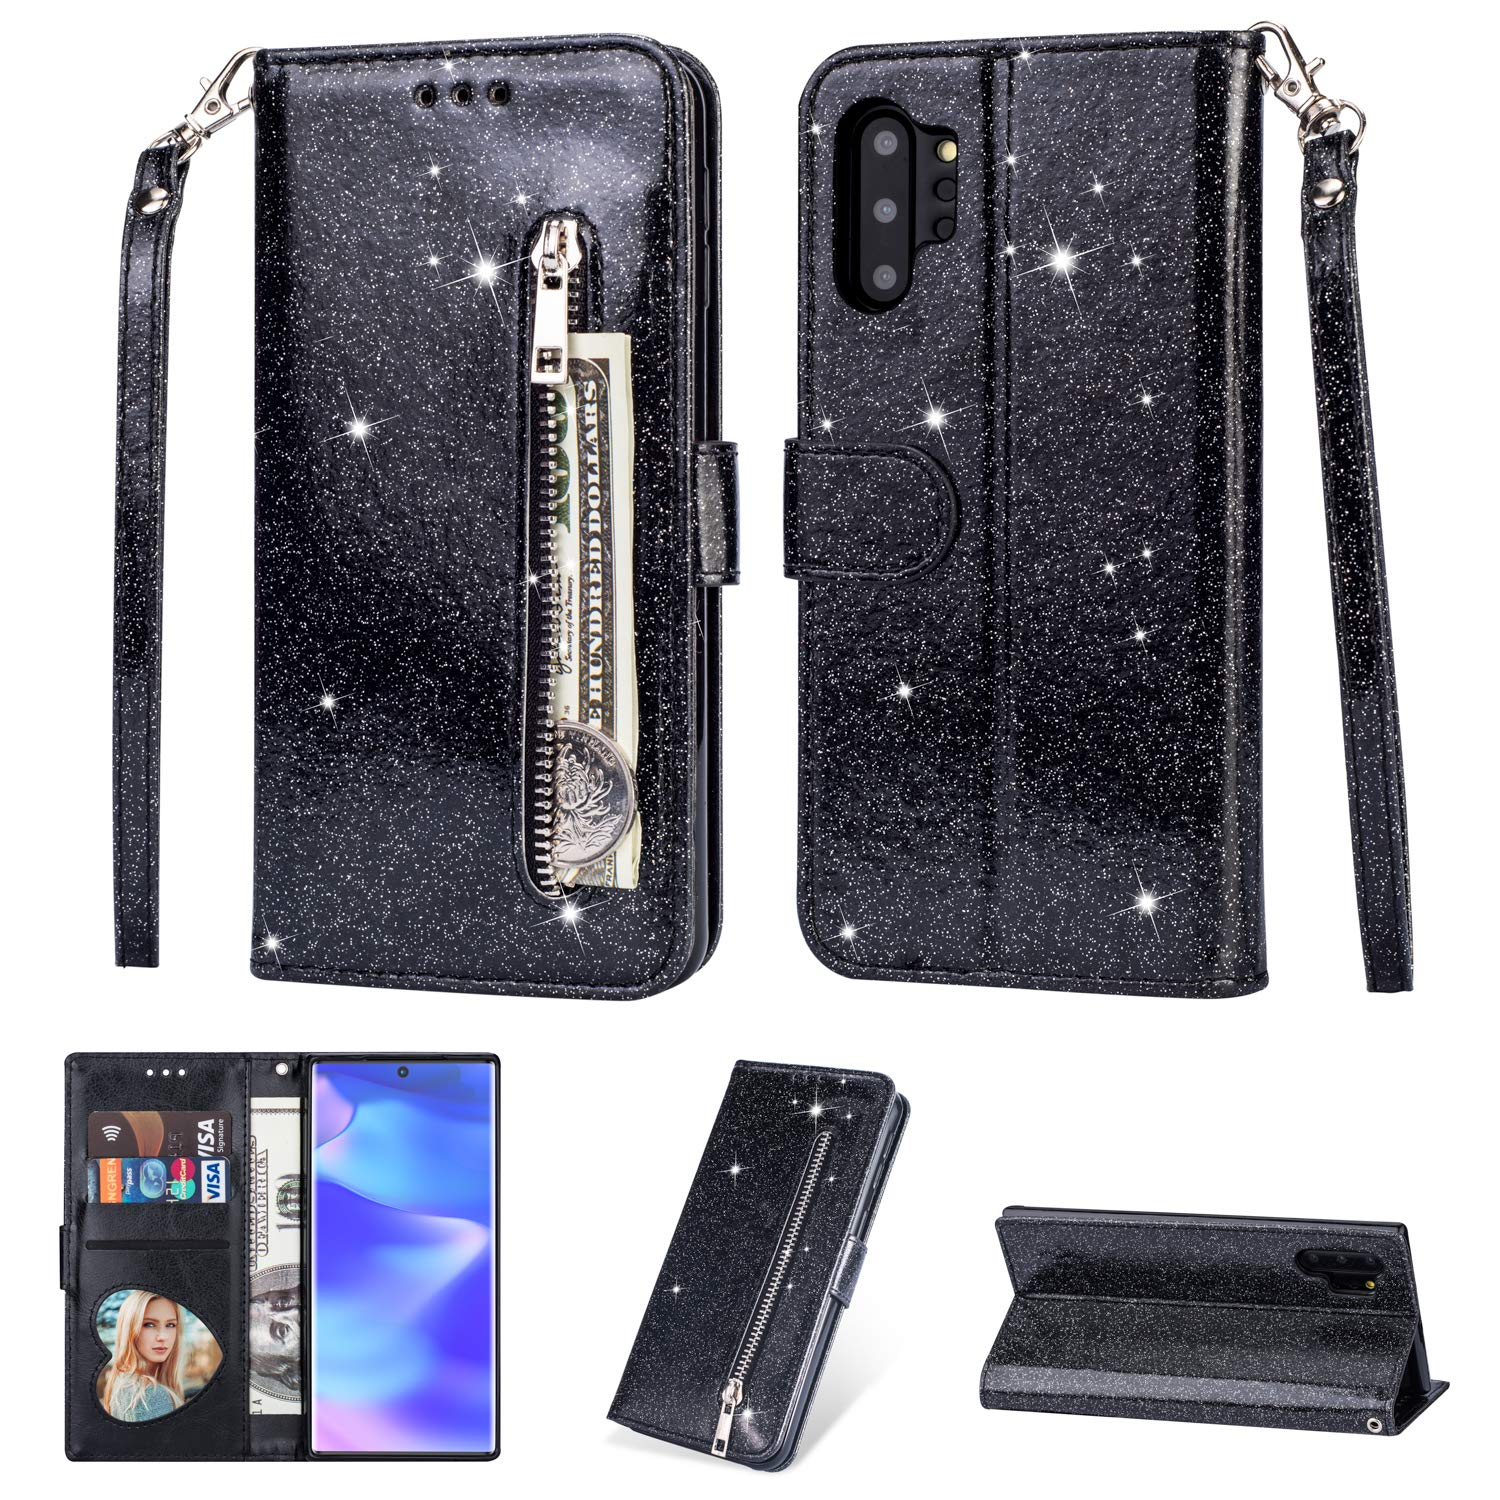 Tznzxm Galaxy Note 10+ Plus/5G /Pro Case,Luxury Bling Glitter PU Leather Magnetic Protective Flip Kickstand with Zipper Coin Credit Card Holder Cover Wrist Wallet for Samsung Note 10+ Plus Black by Tznzxm